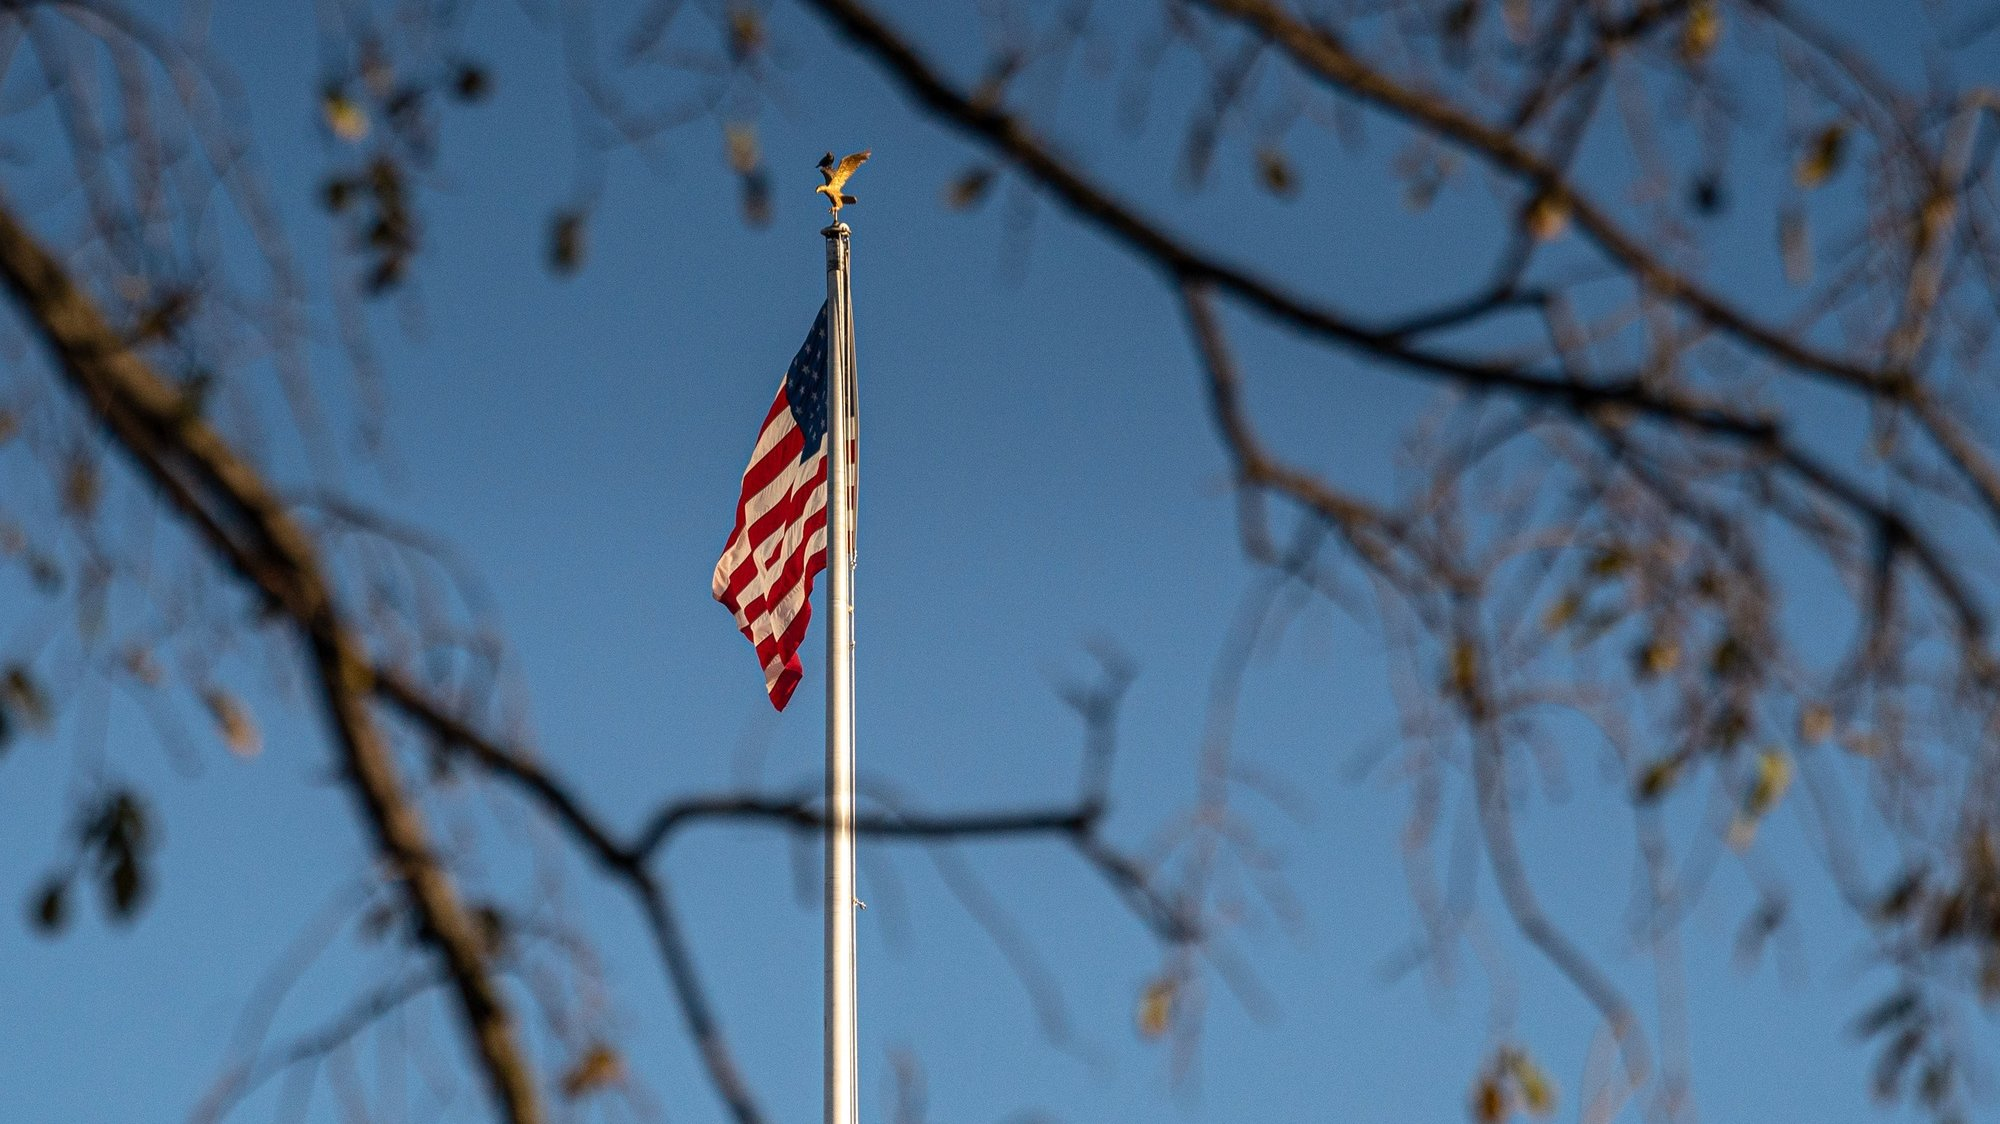 epa08824340 The US flag is seen waving in the wind as the trees lose their leaves in the fall season in Washington, DC, USA, on 16 November 2020.  EPA/Ken Cedeno / POOL